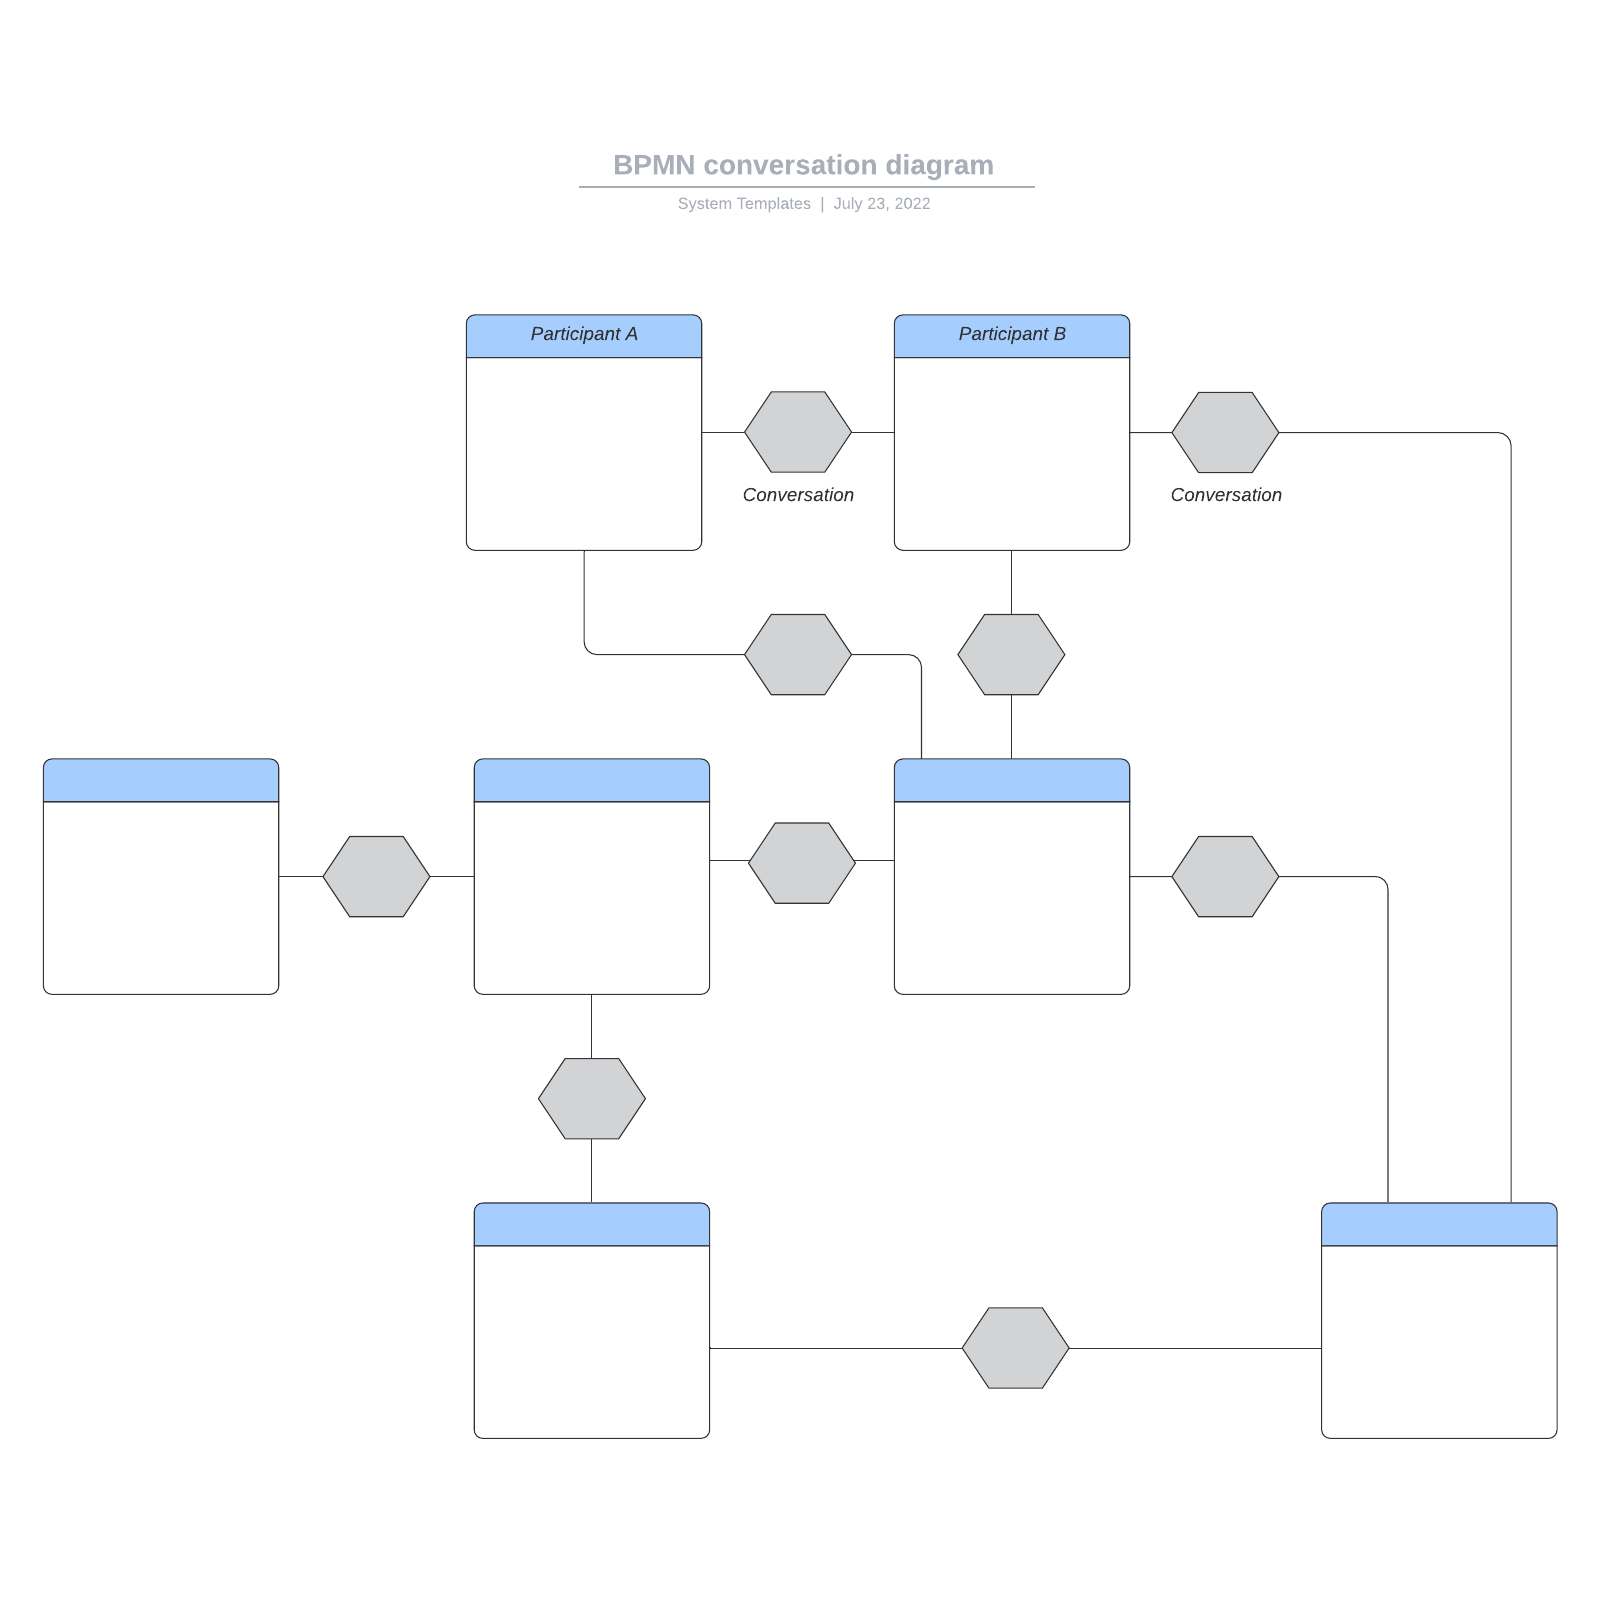 BPMN conversation diagram